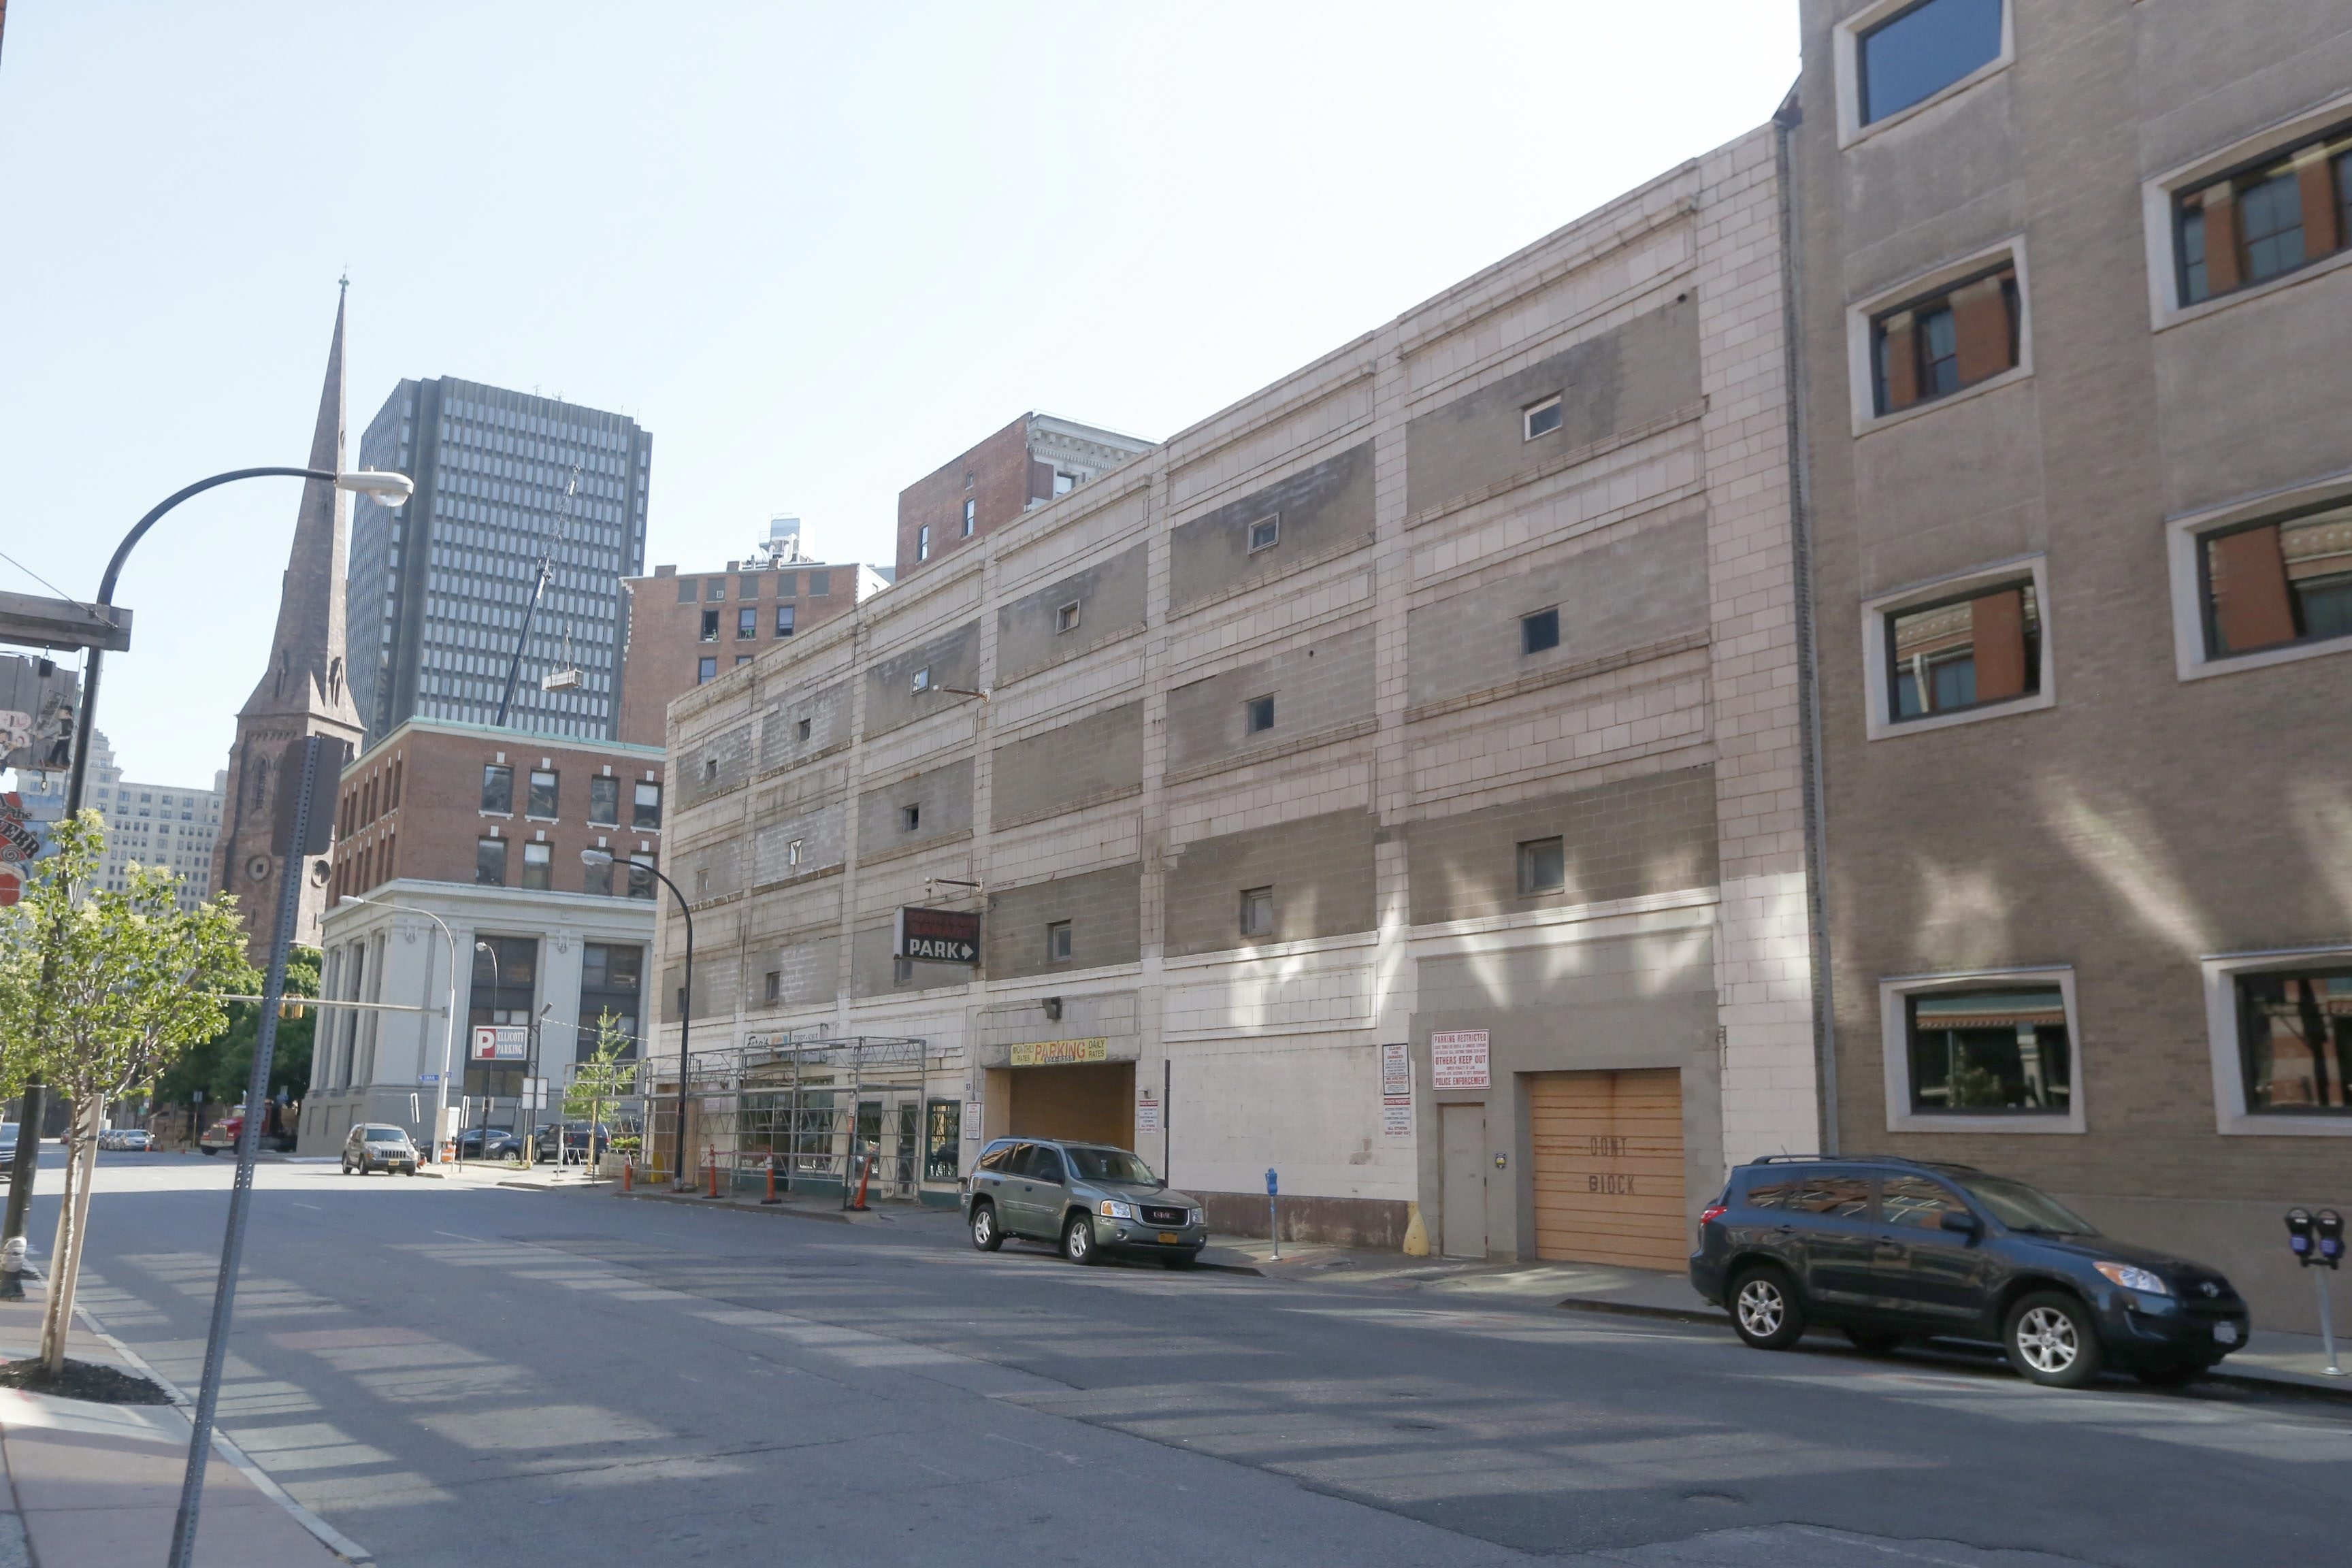 The 278-space parking ramp at 93 Pearl St. will provide parking for tenants of the Glenny and Marin apartment buildings.